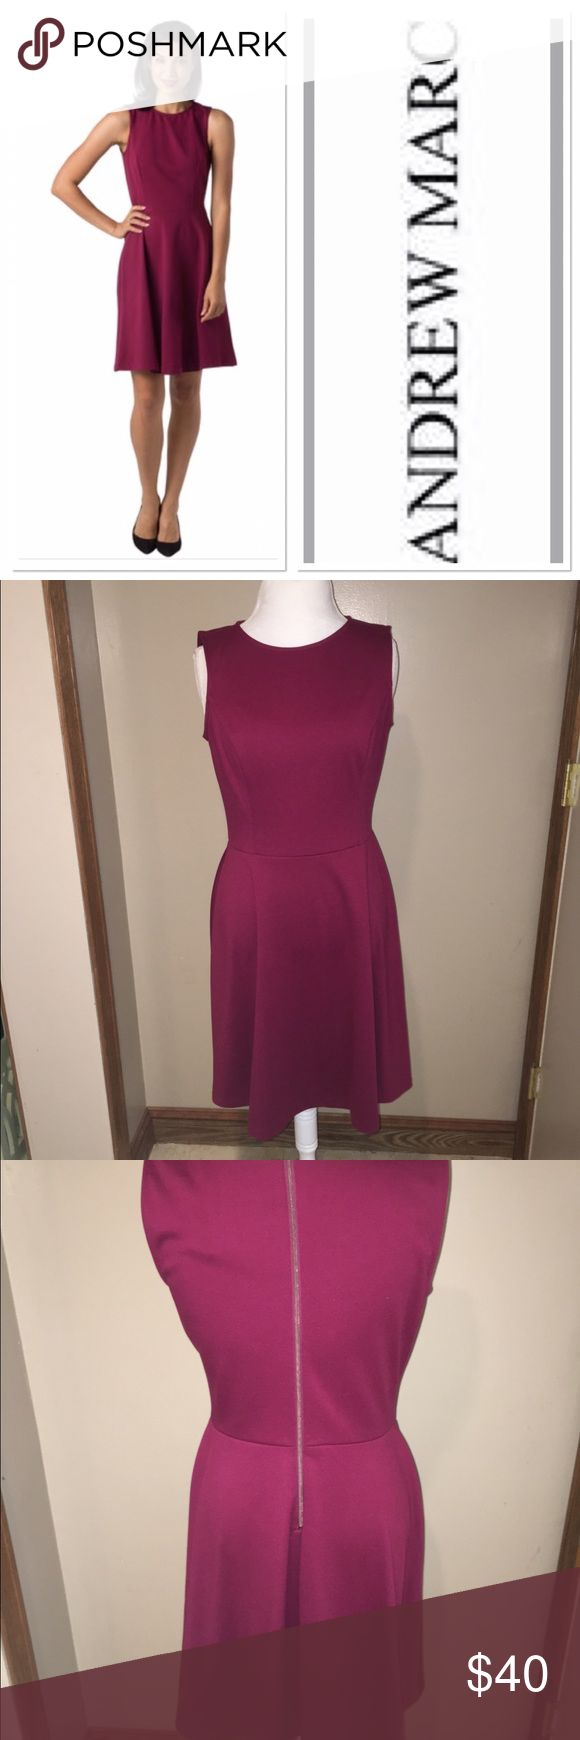 Andrew Marc Maroon Dress Size 10 beautiful Andrew Marc dress zipper in the back slimming waist line in perfect condition Andrew Marc Dresses Midi